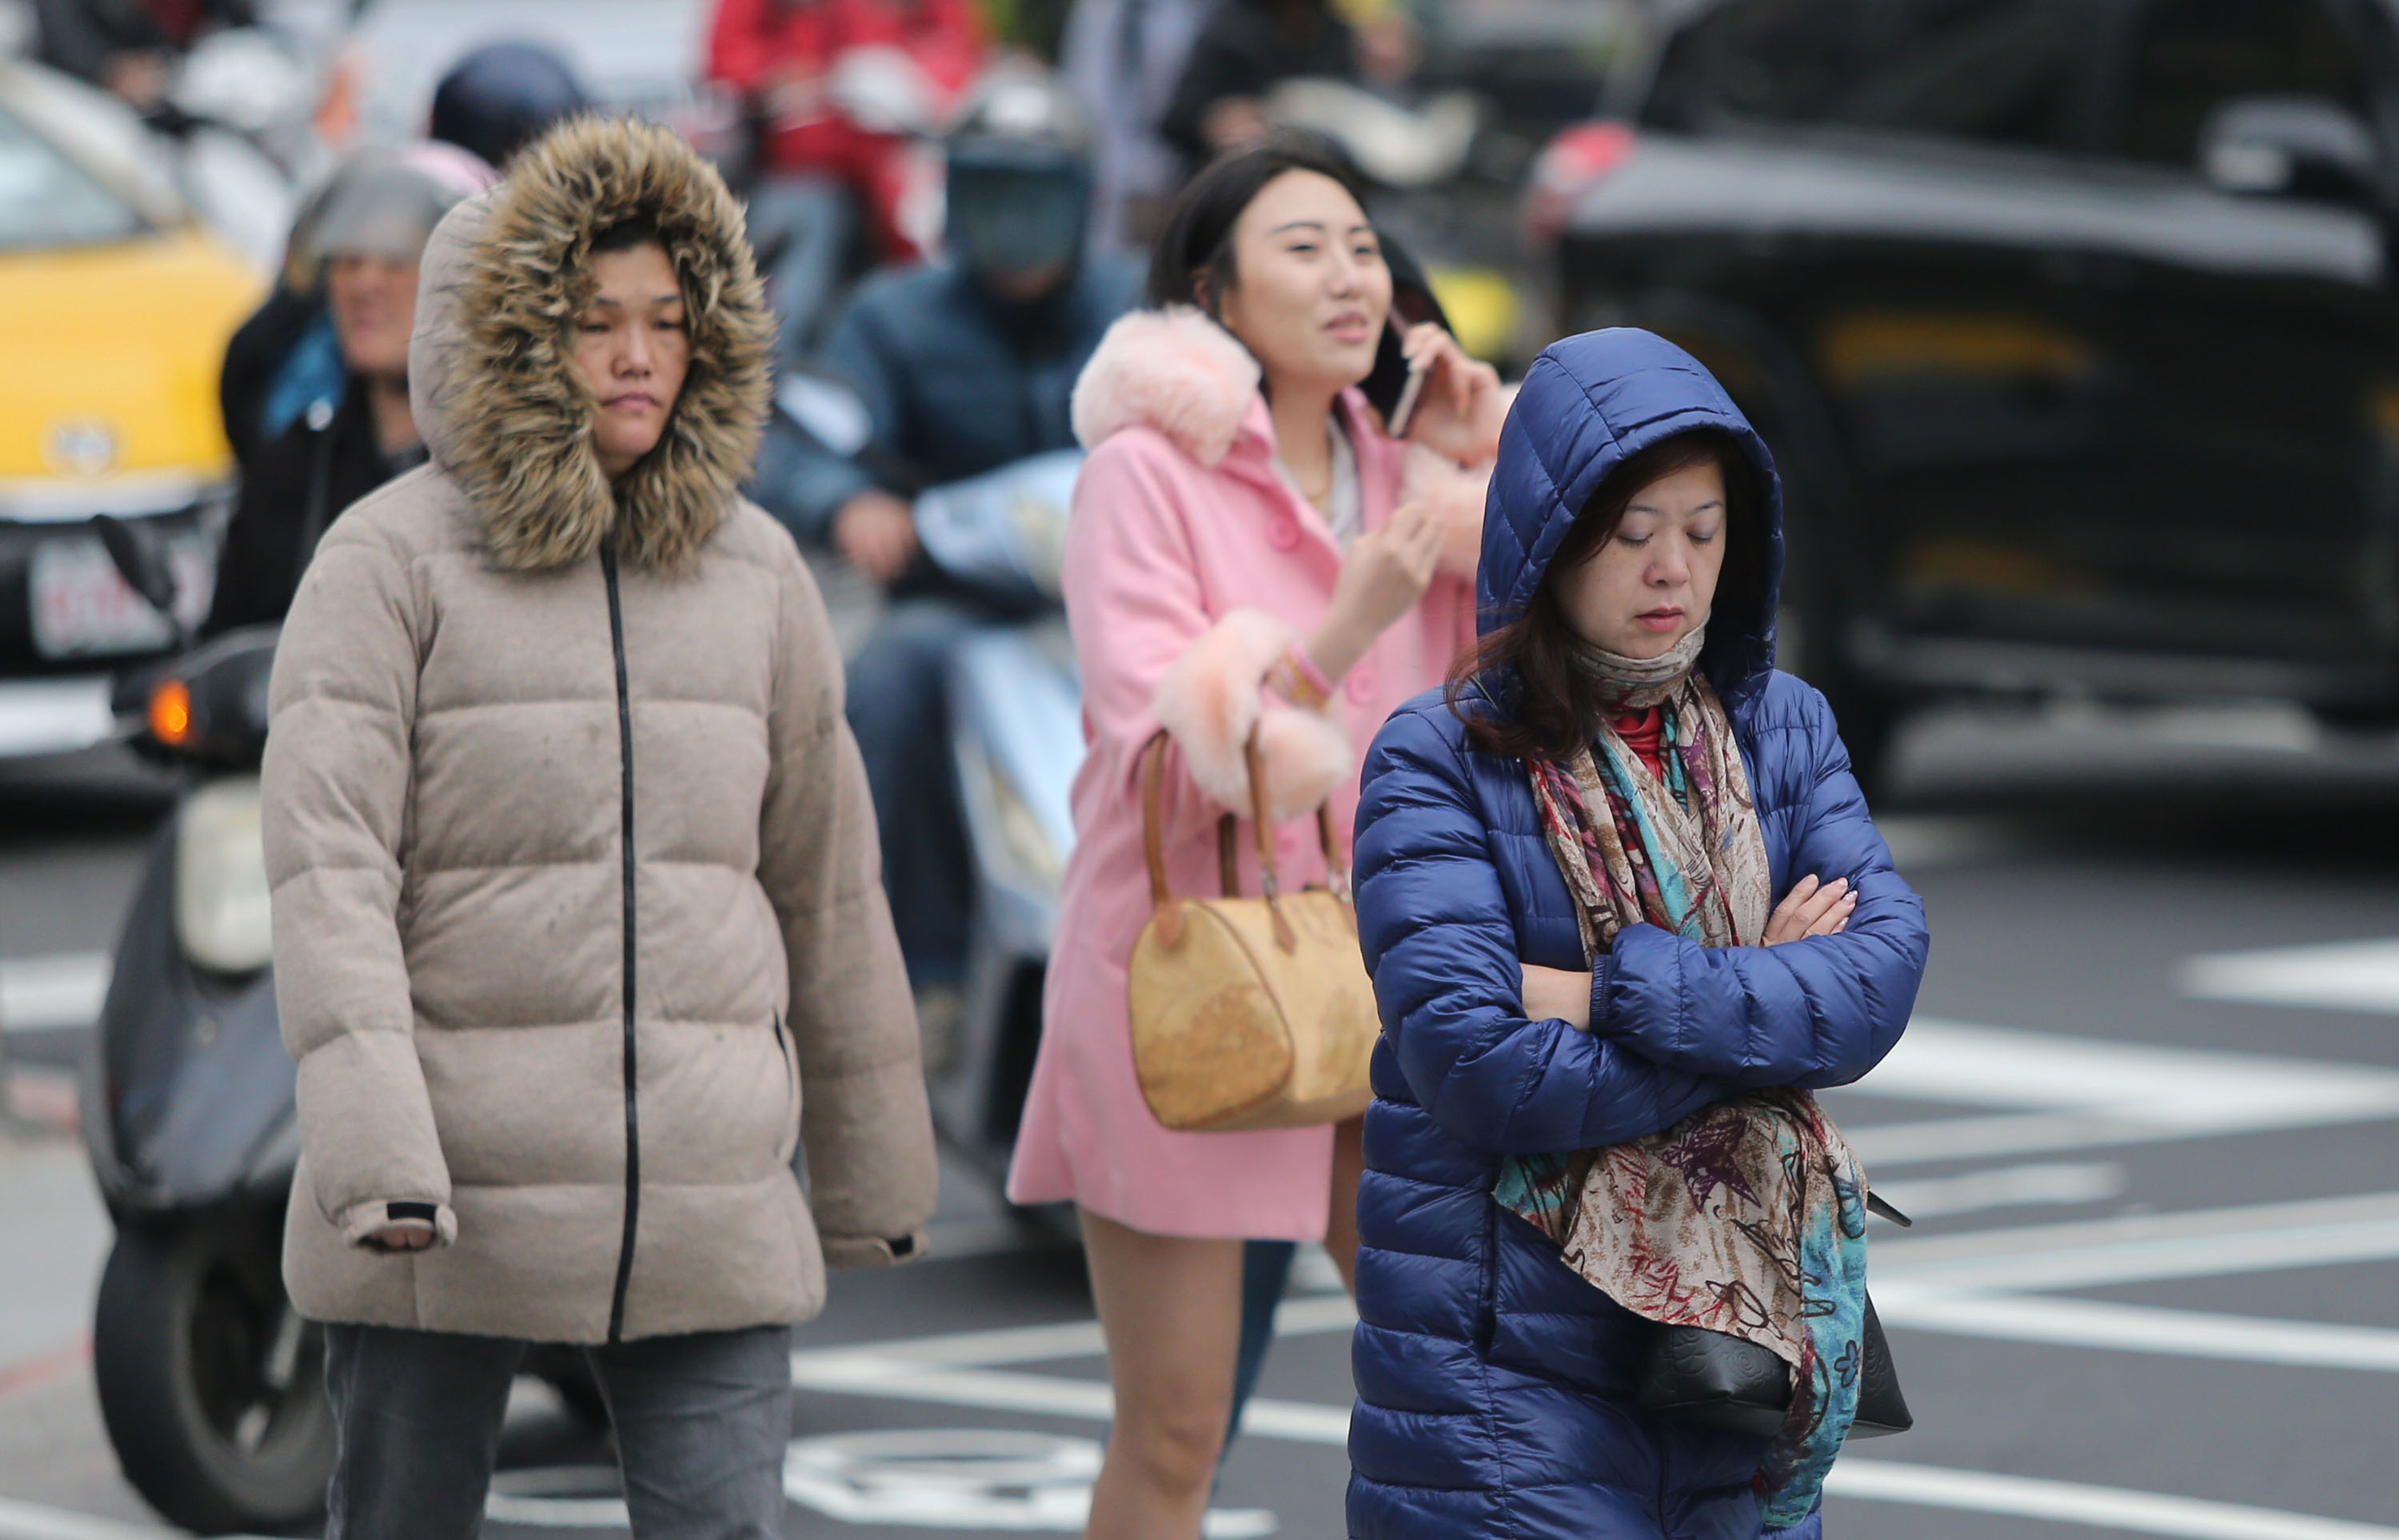 Mercury plunges to 11 degrees in Tamshui